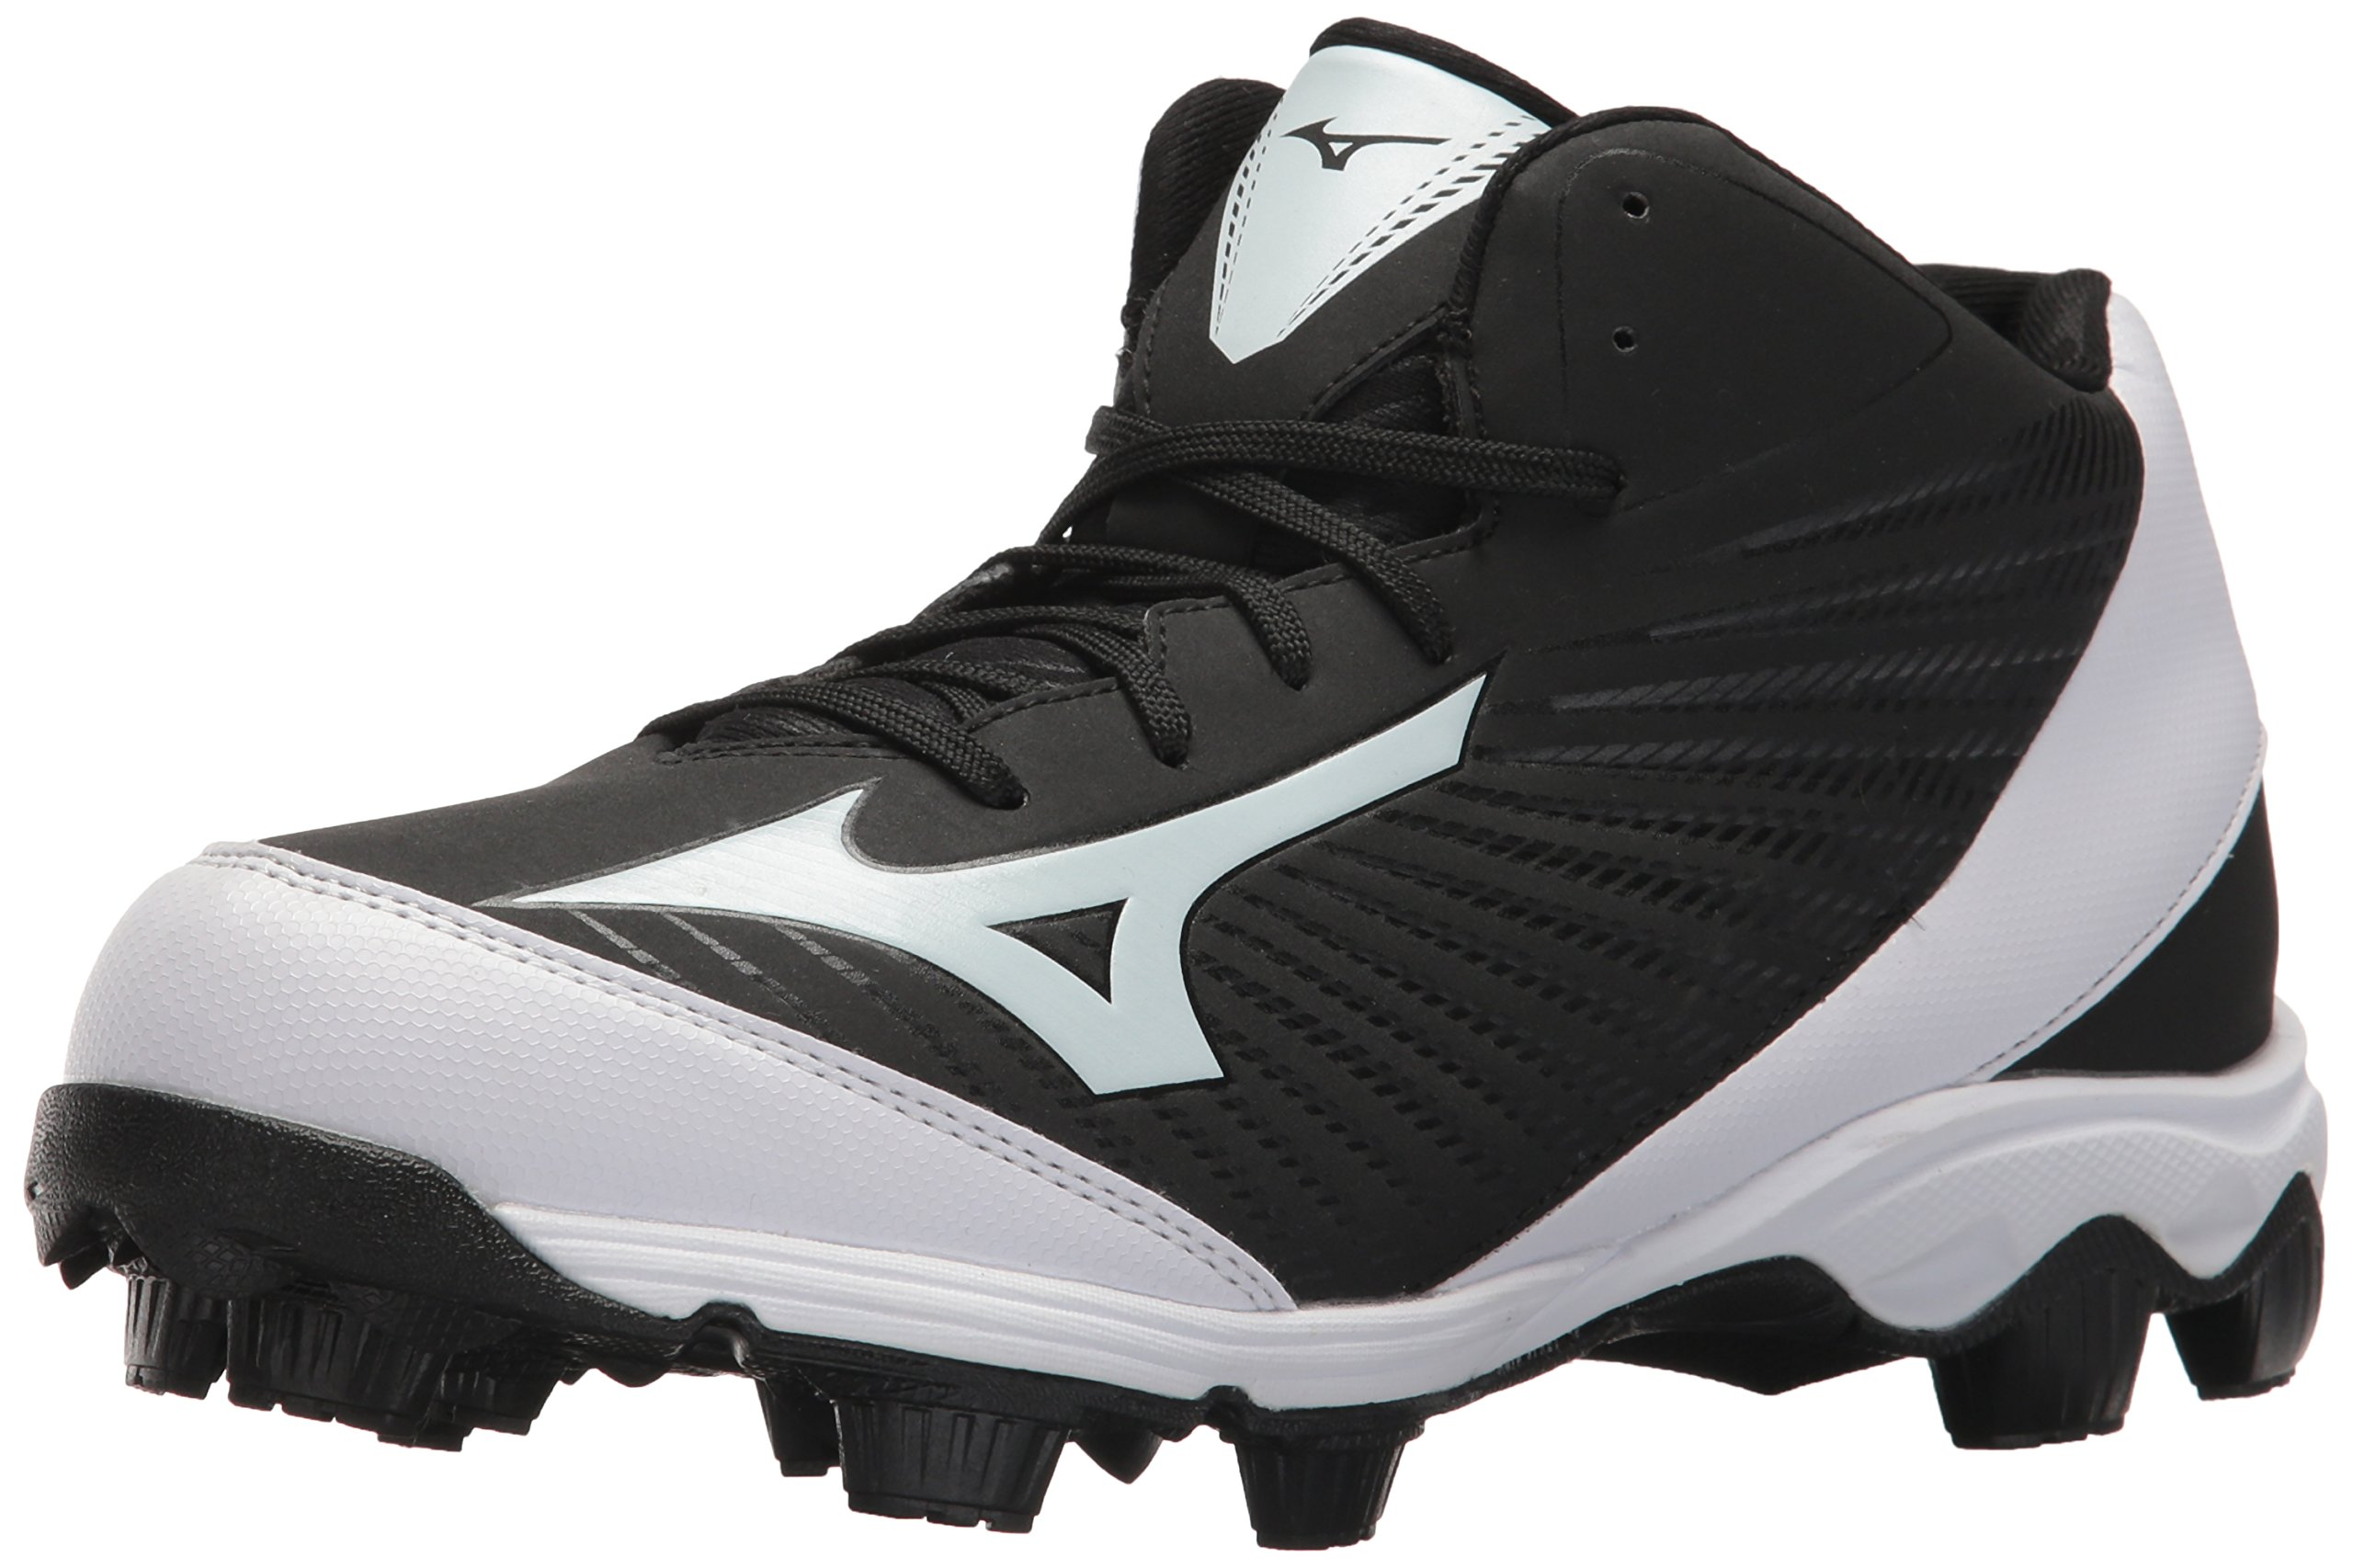 Mizuno Men's 9-Spike Advanced Franchise 9 Molded Cleat-Mid Baseball Shoe, Black/White, 10.5 D US